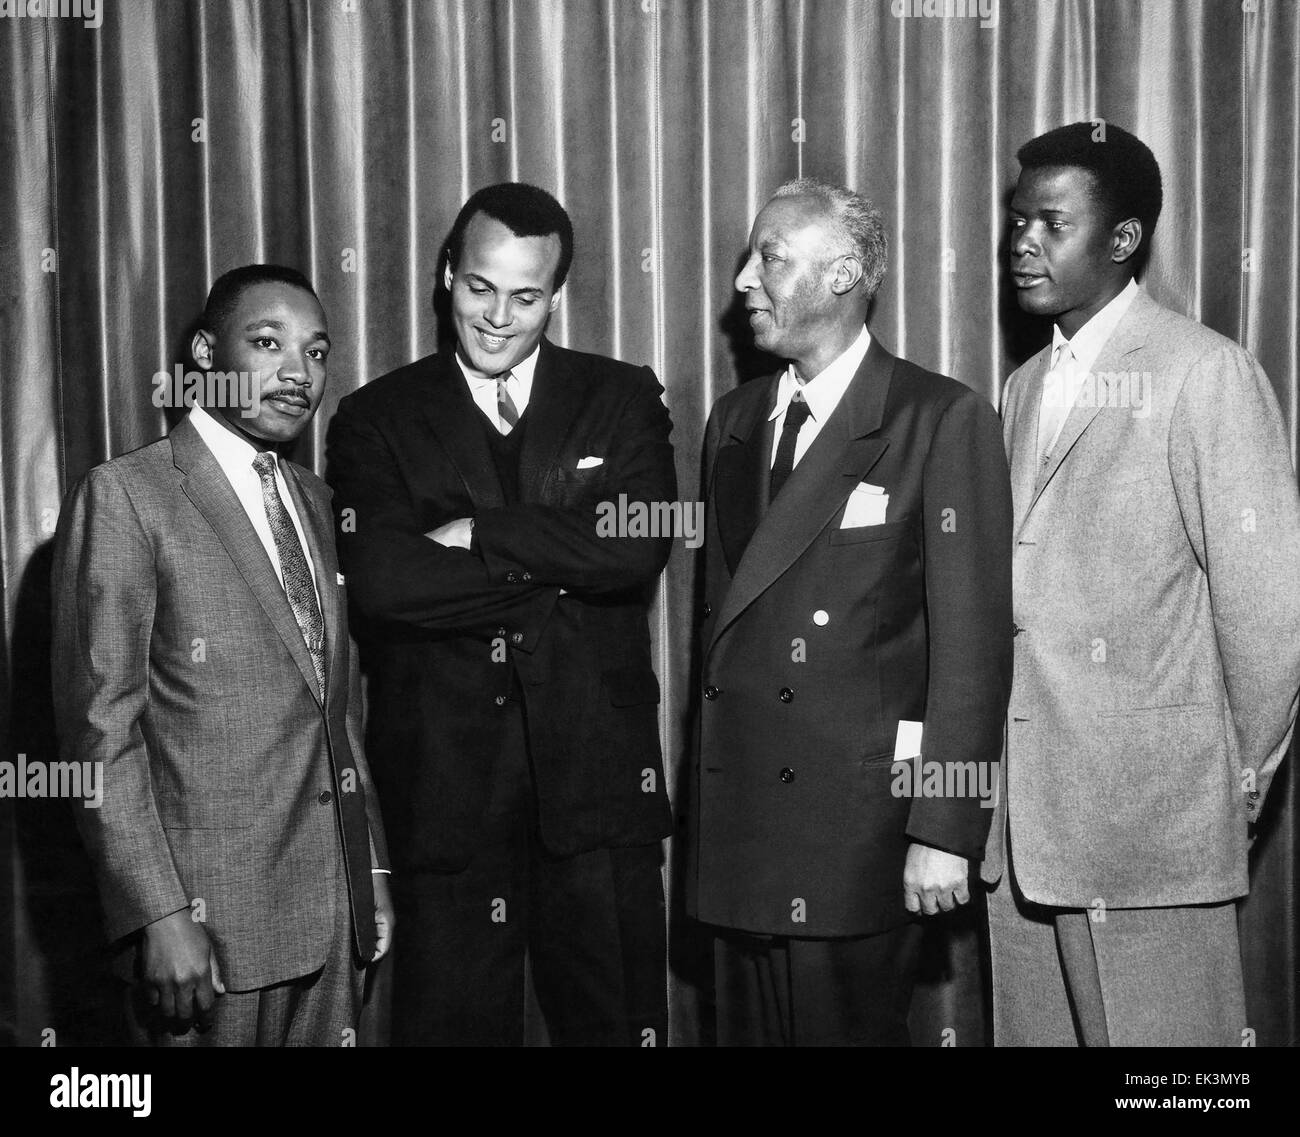 Martin Luther King, Jr., Harry Belafonte, Asa Philip Randolph, Sidney Poitier, Portrait, circa 1960 Stock Photo